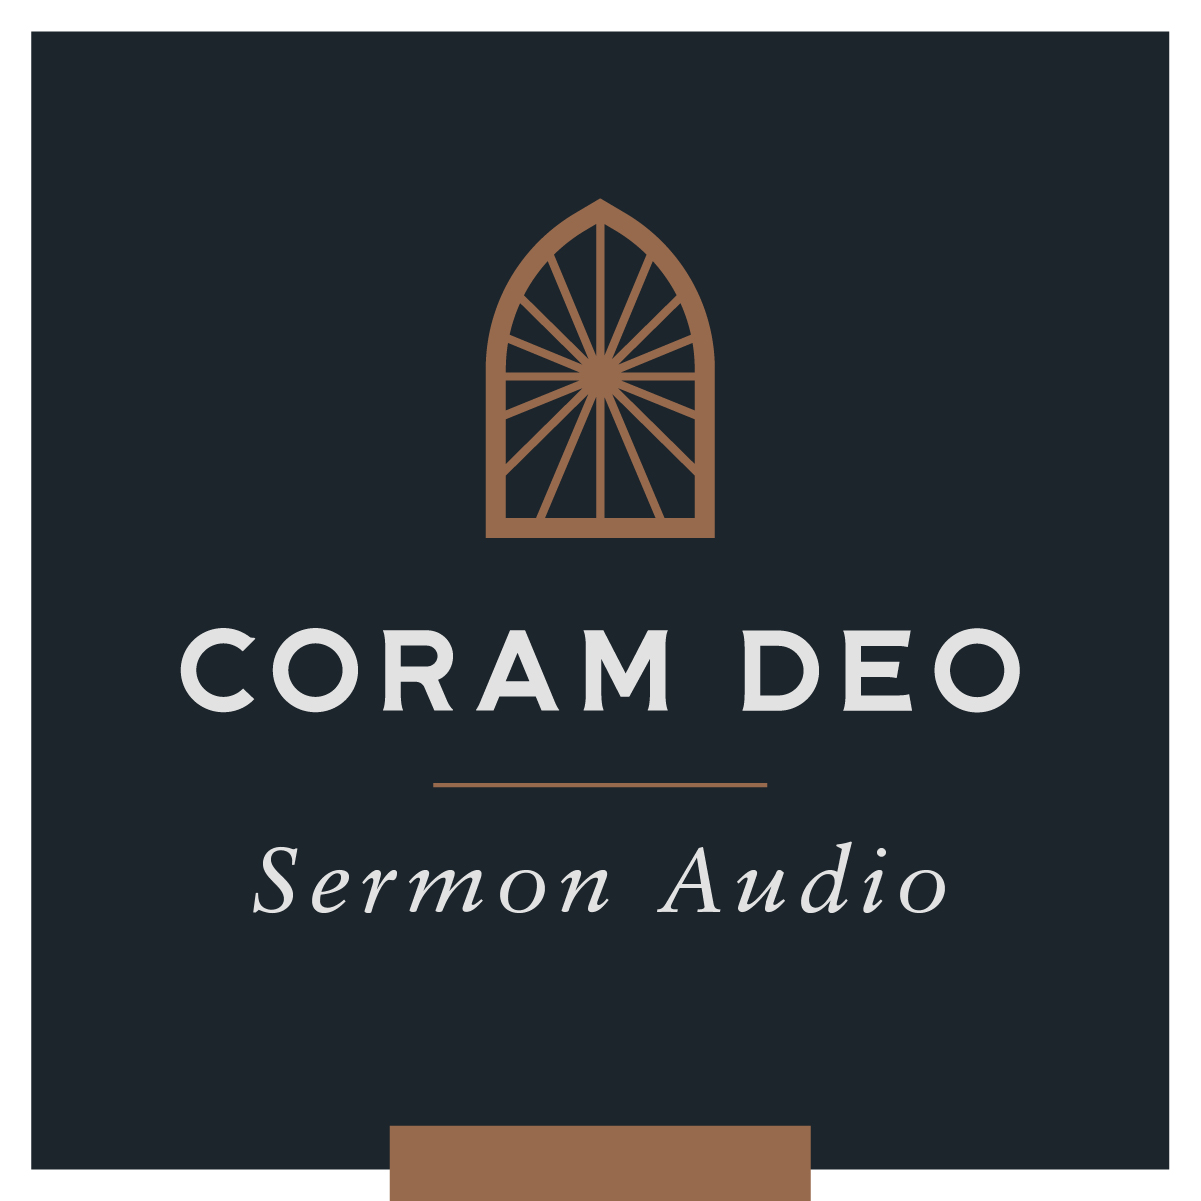 1903_Sermon Audio.jpg